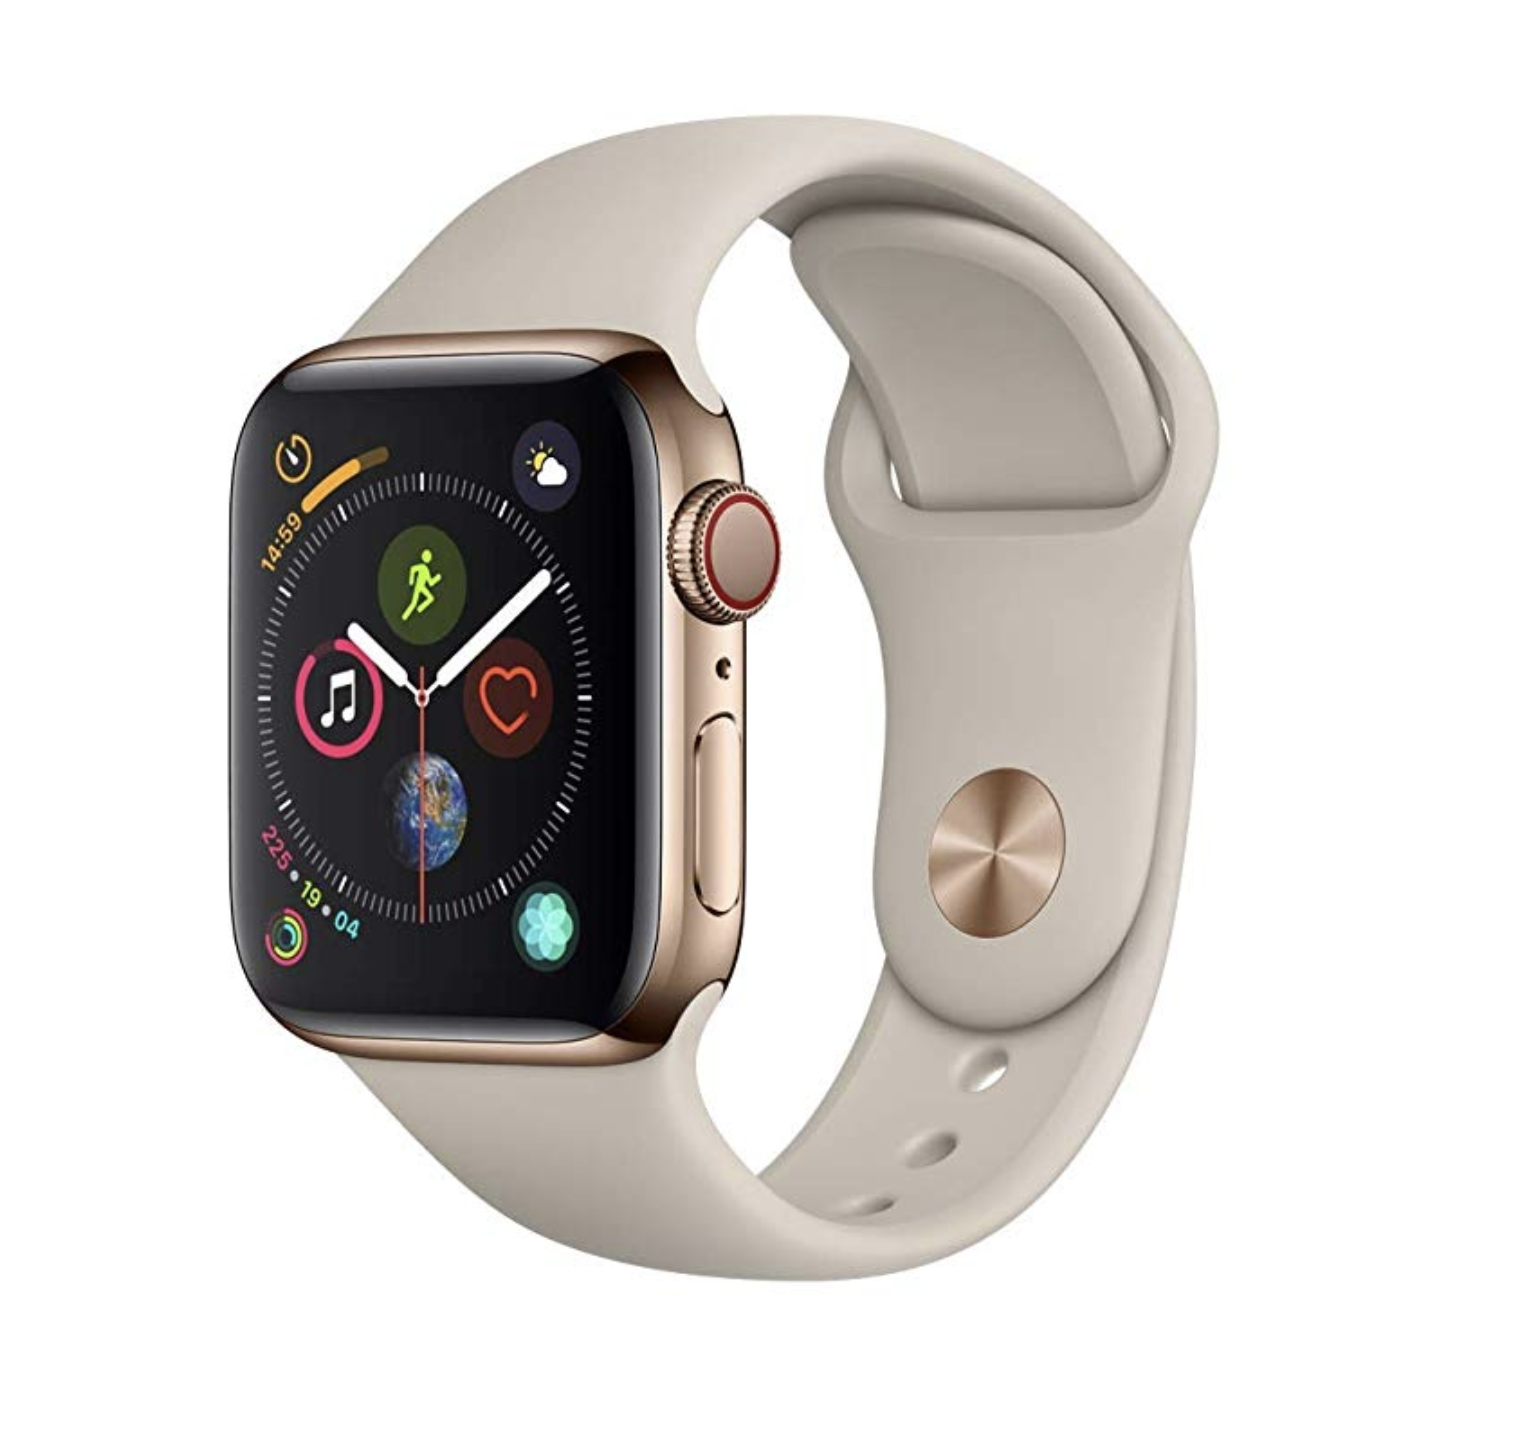 Love the color tones in this Apple Watch Series 4. Apple